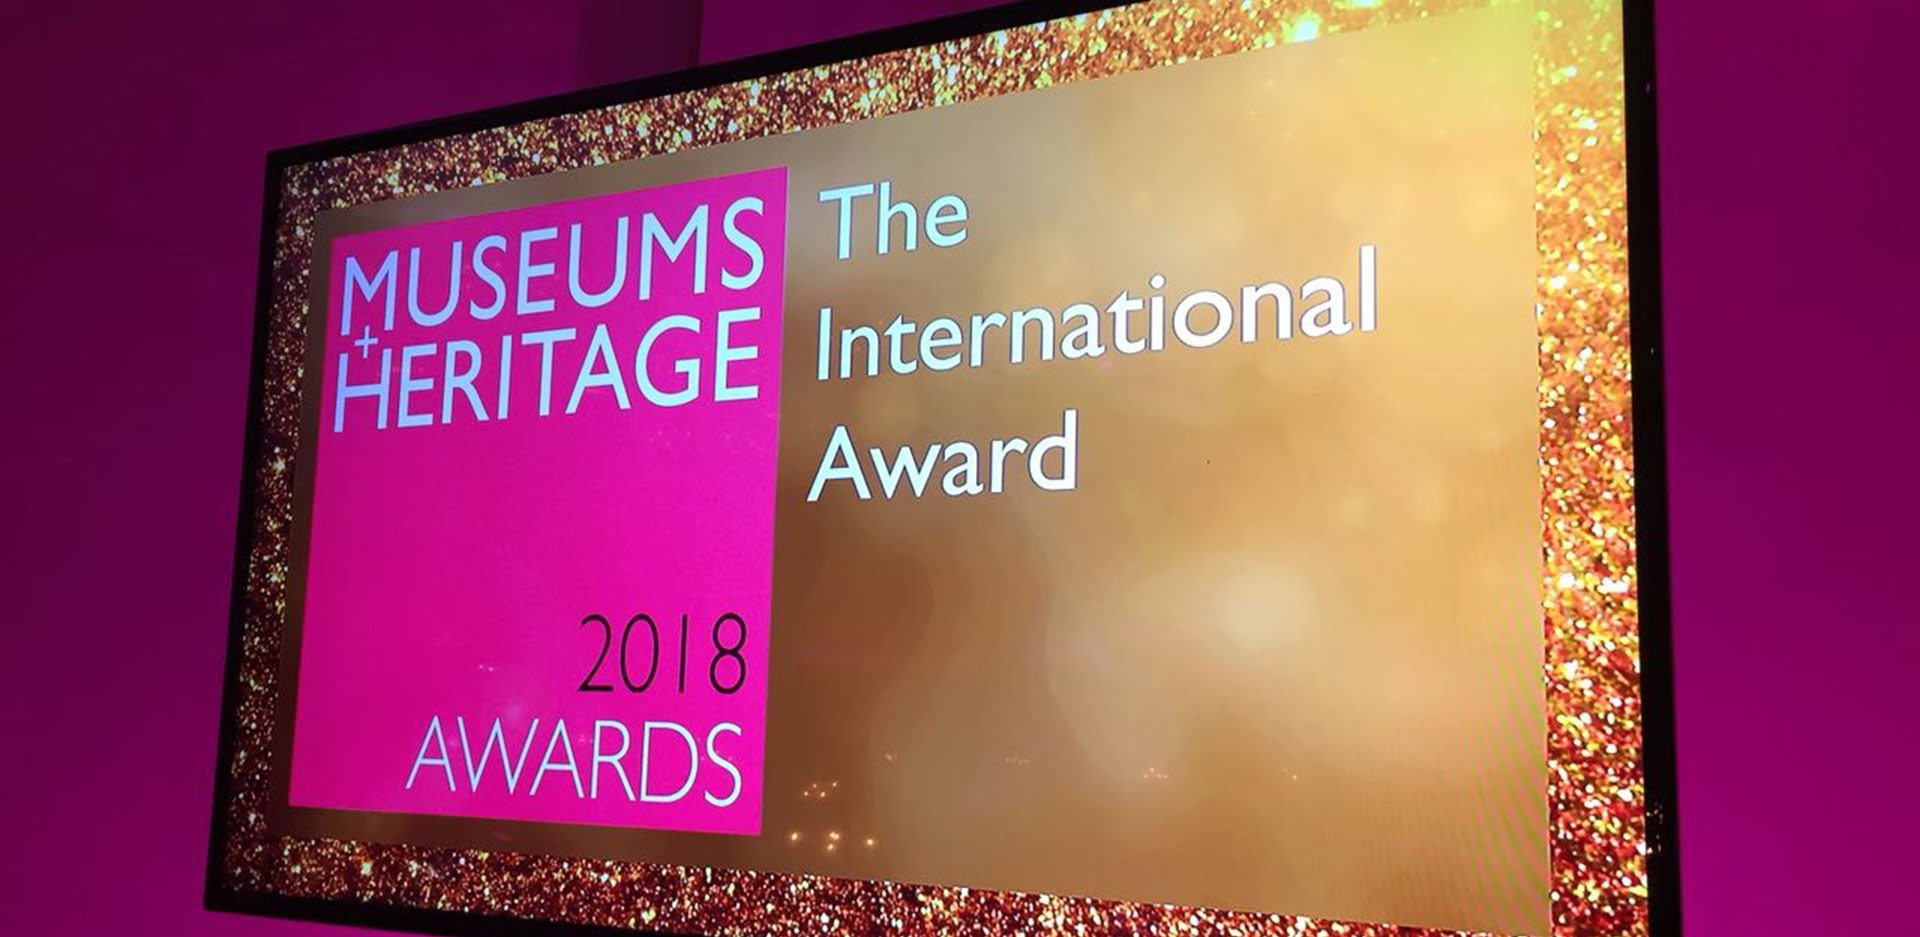 Museum and Heritage Awards 2018 am 16.05.2018 in London